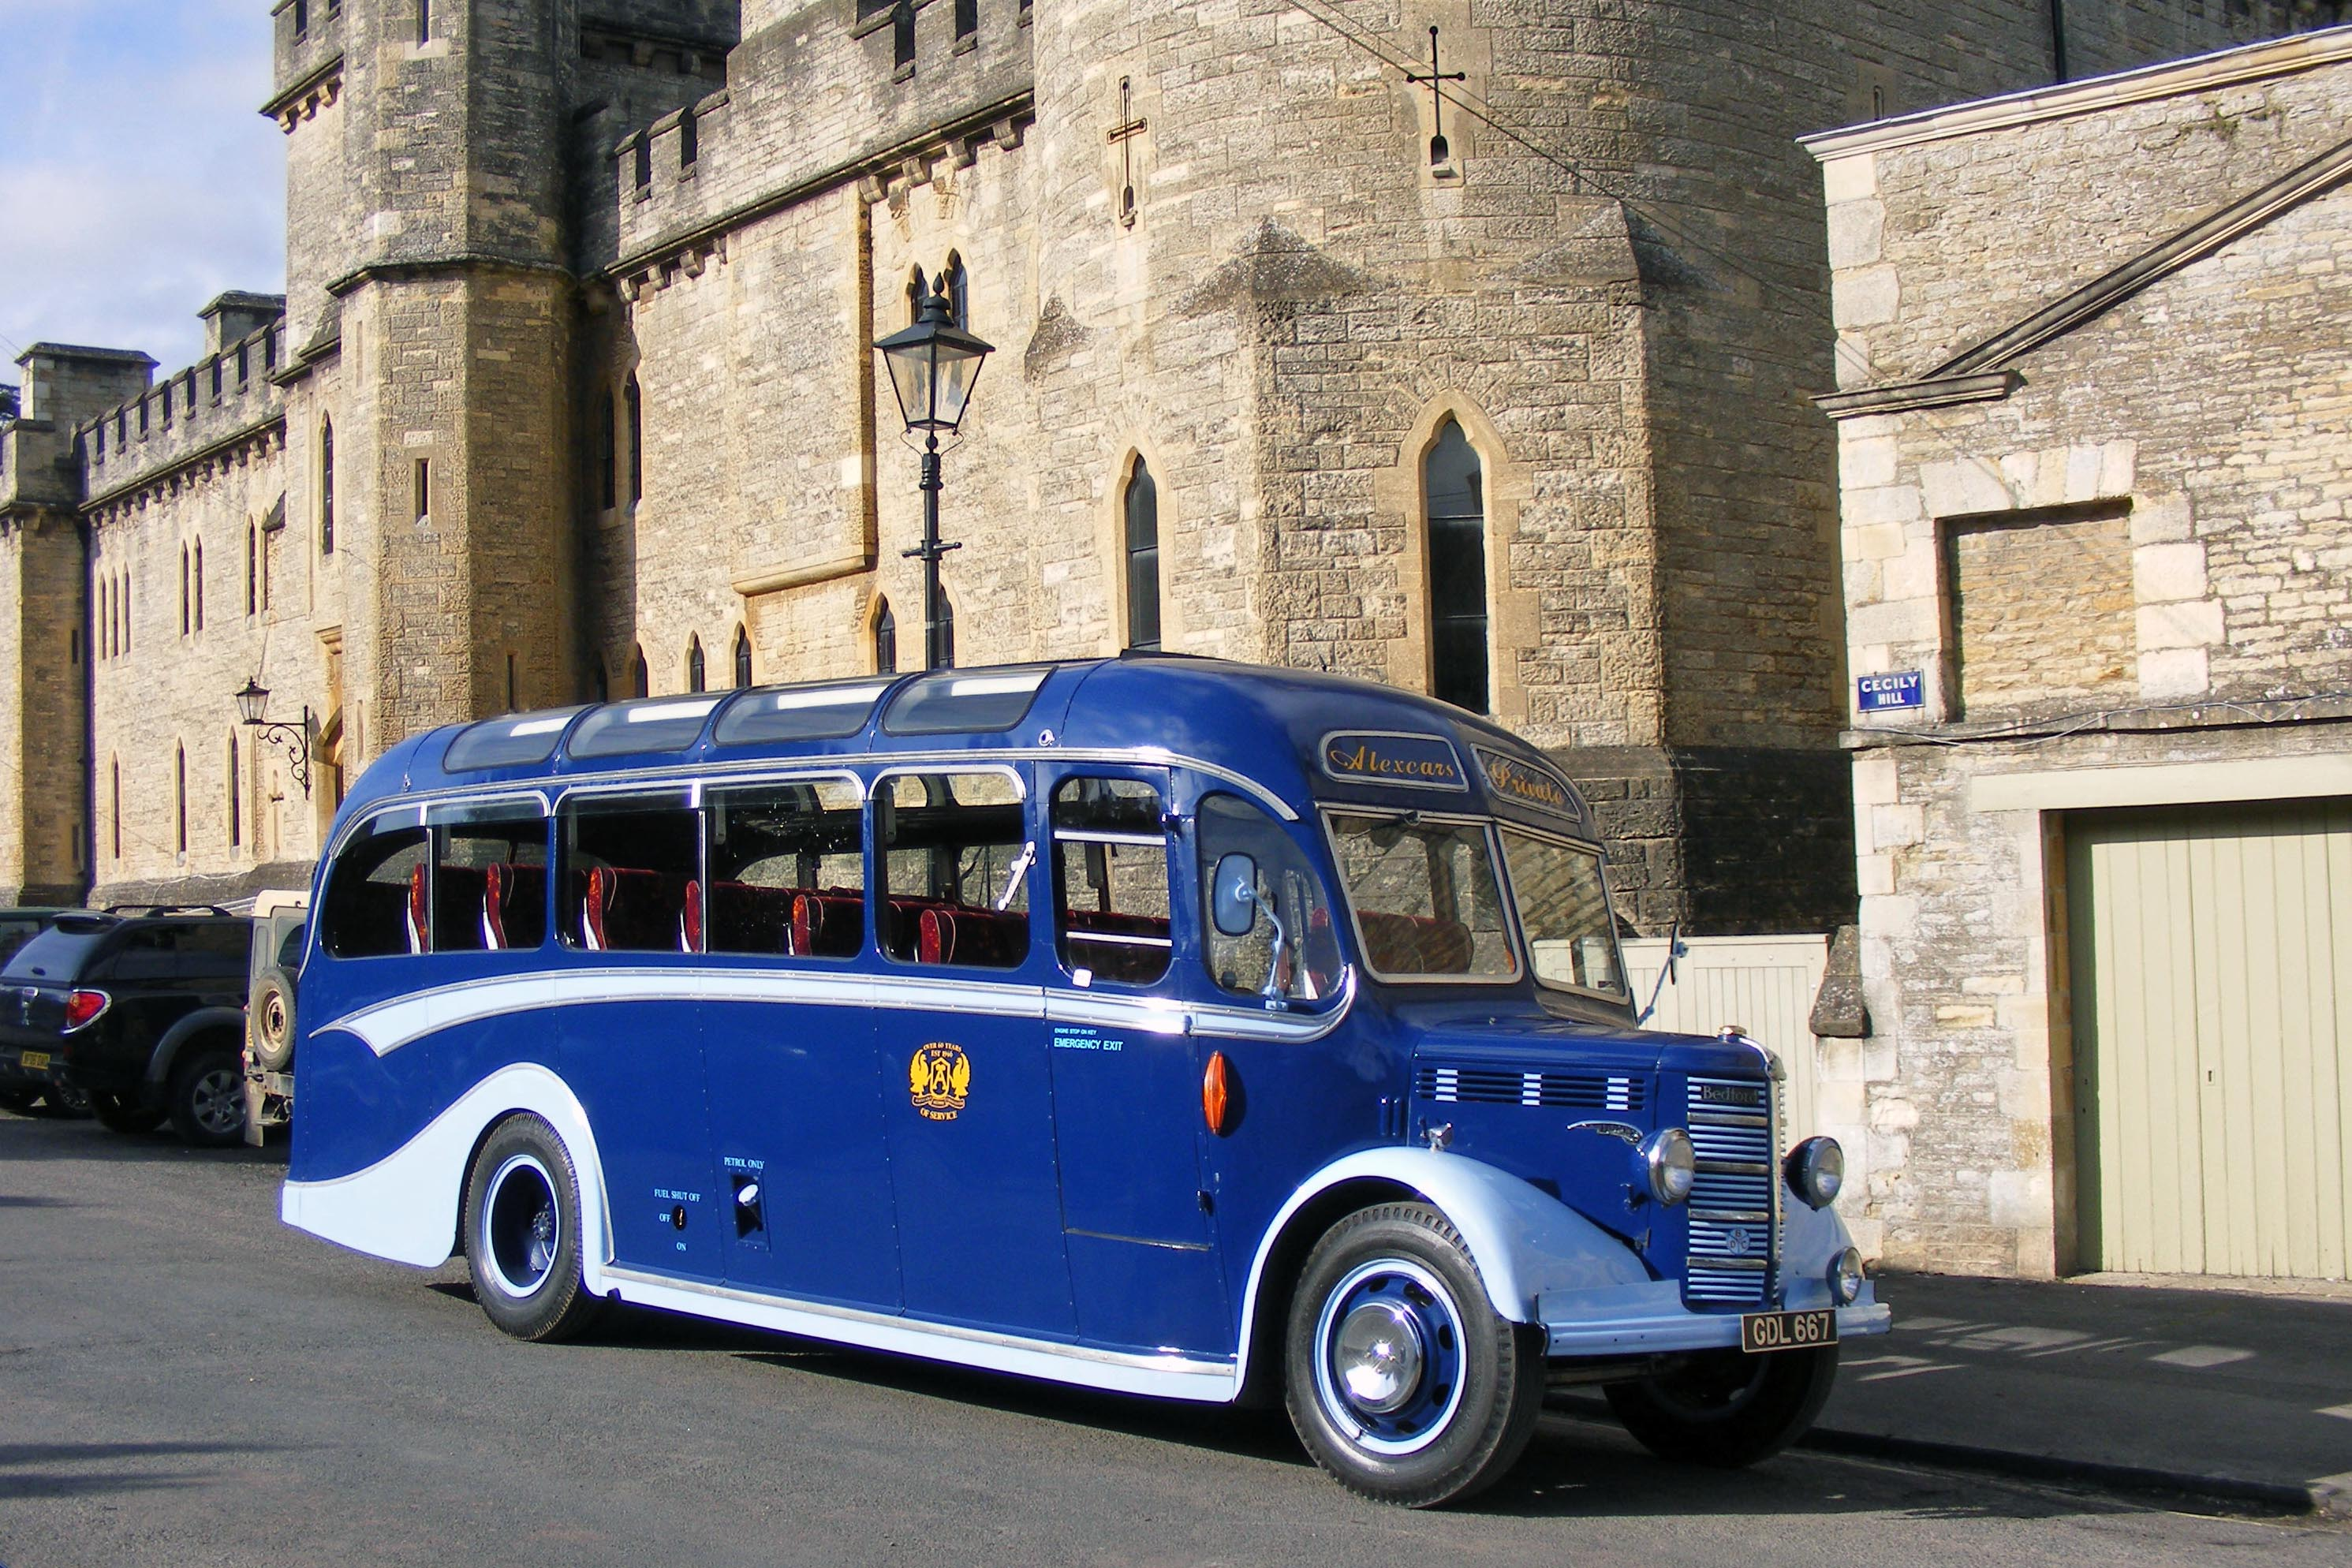 Old Babs, the Alexcars 1950s vintage bus